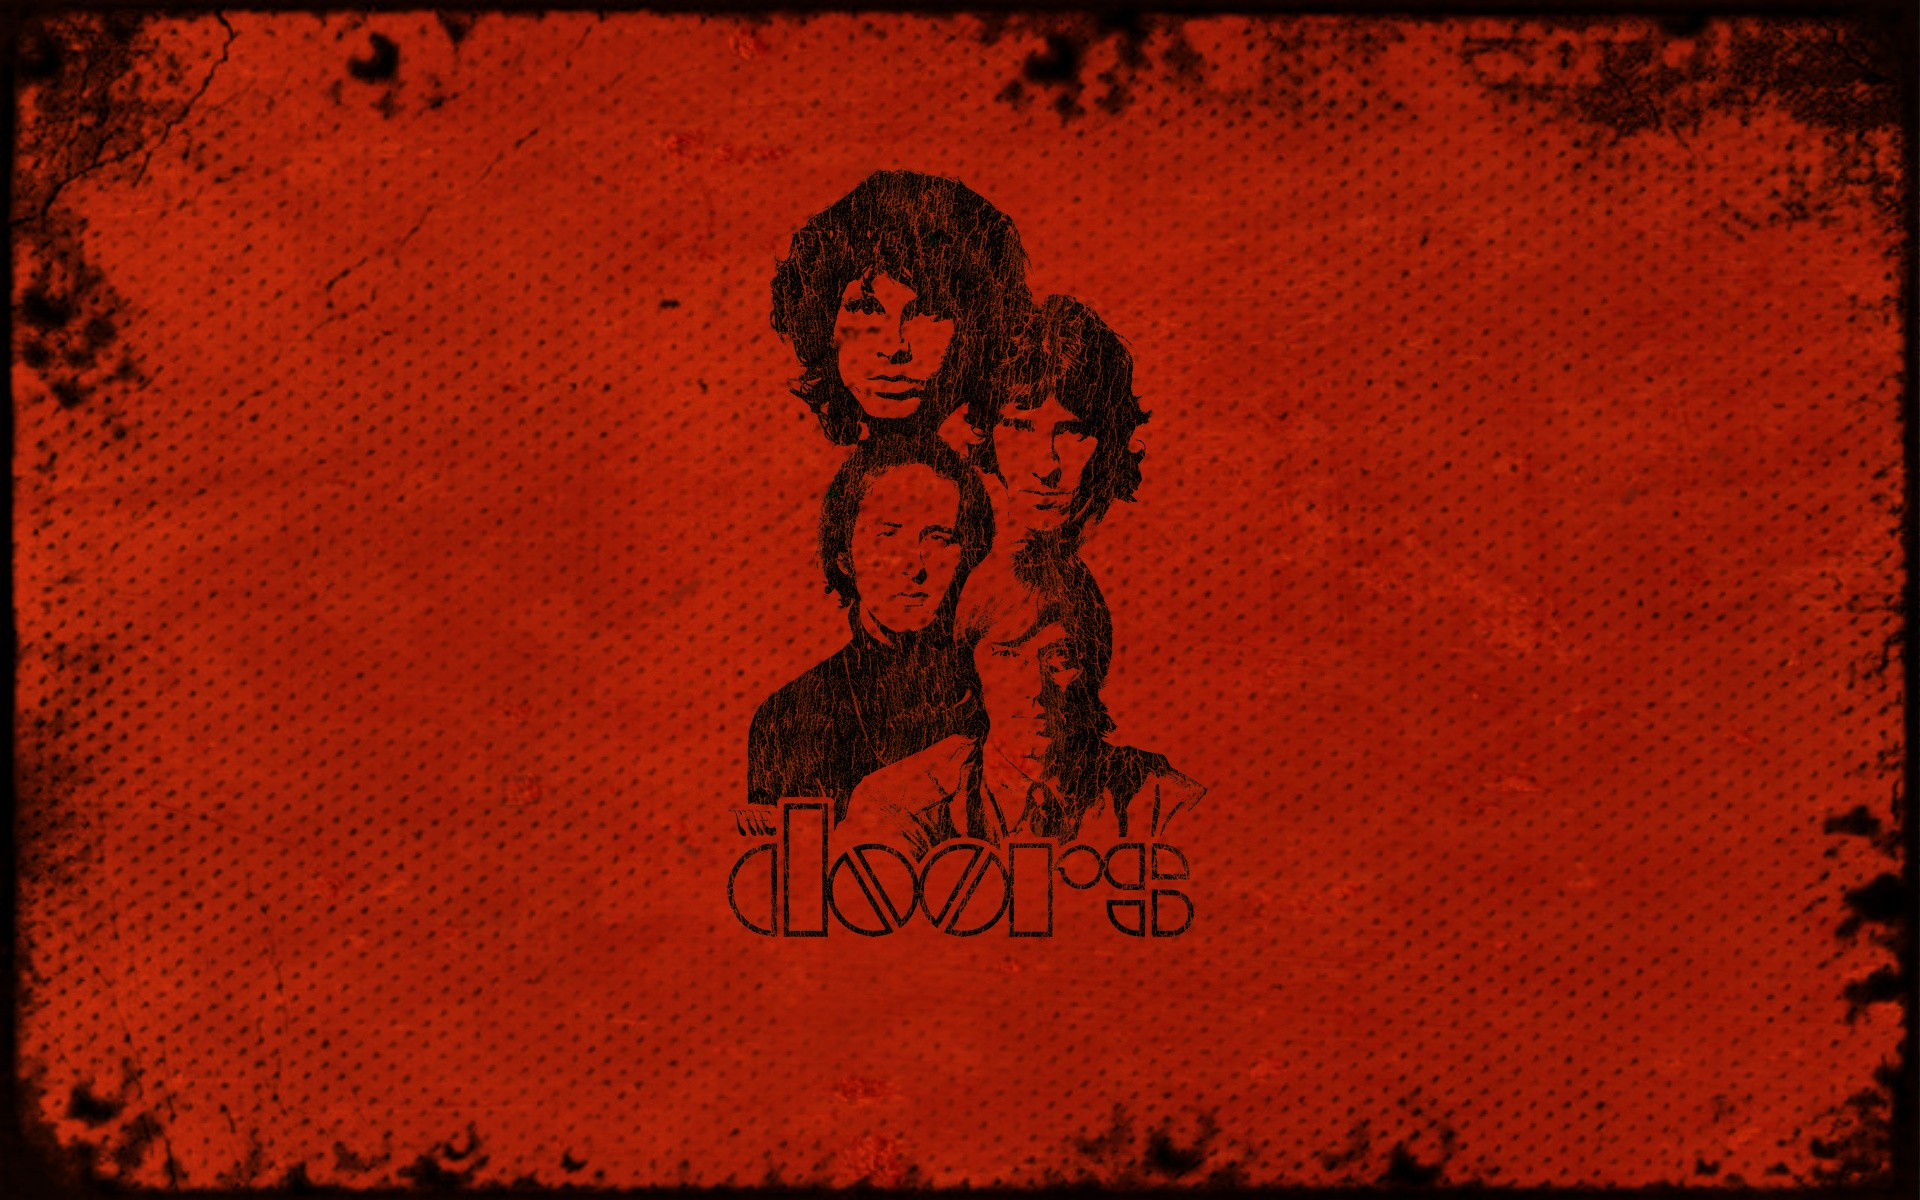 the doors images hd - photo #1